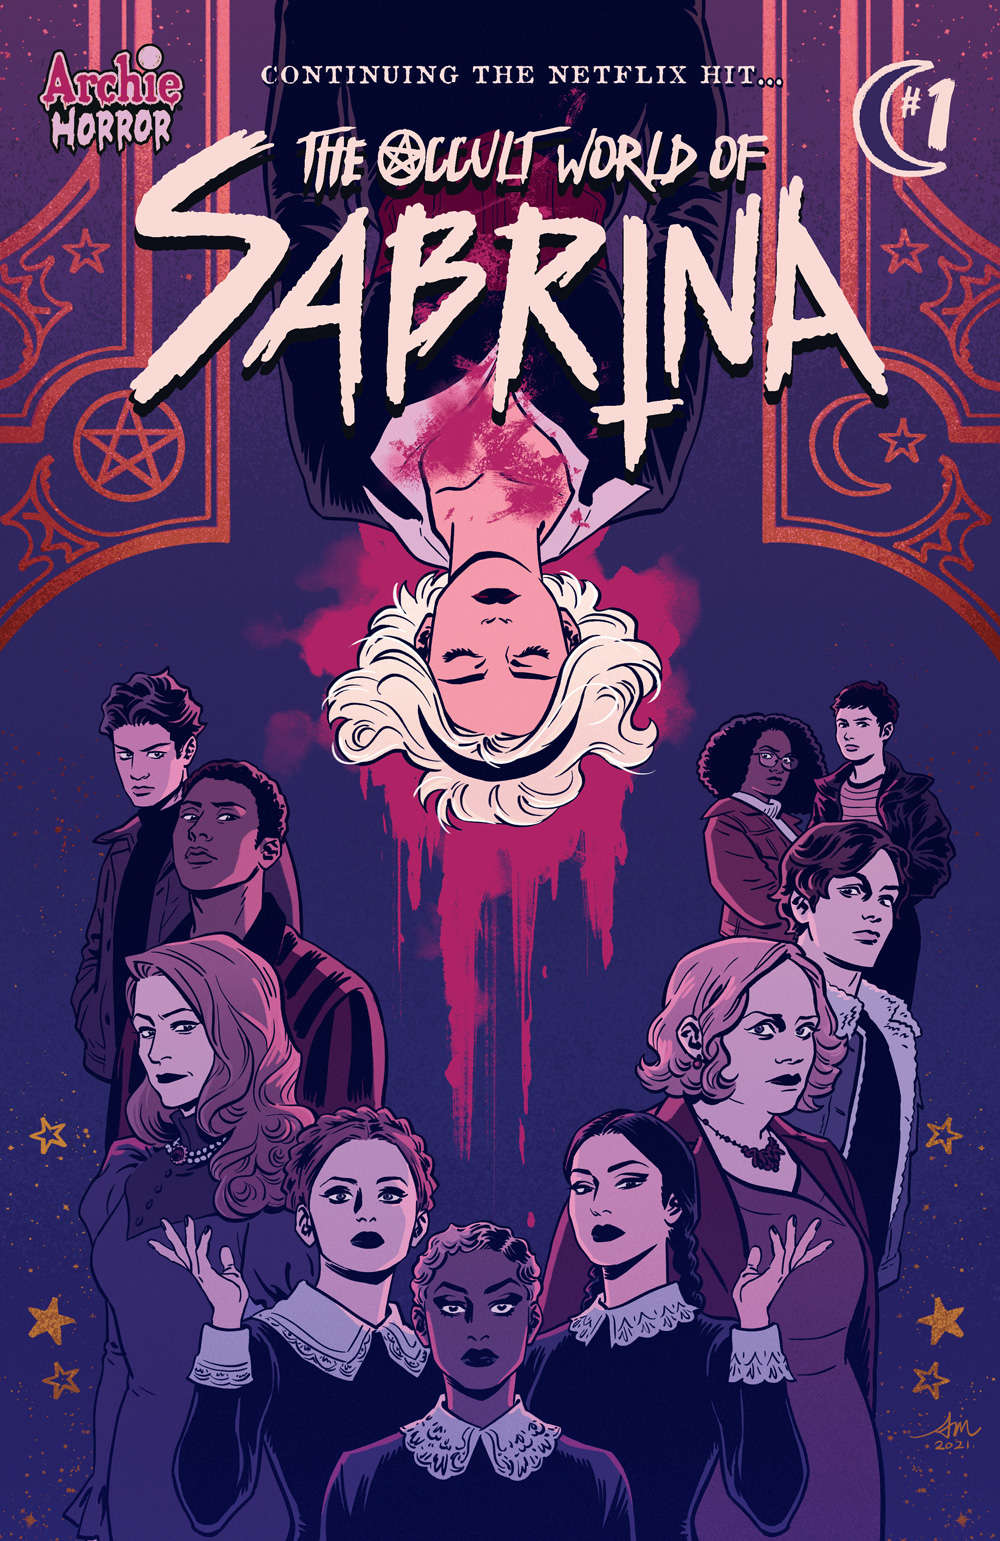 Chilling Adventures of Sabrina to continue Netflix saga in comic form, 'Archie' multiverse on the way